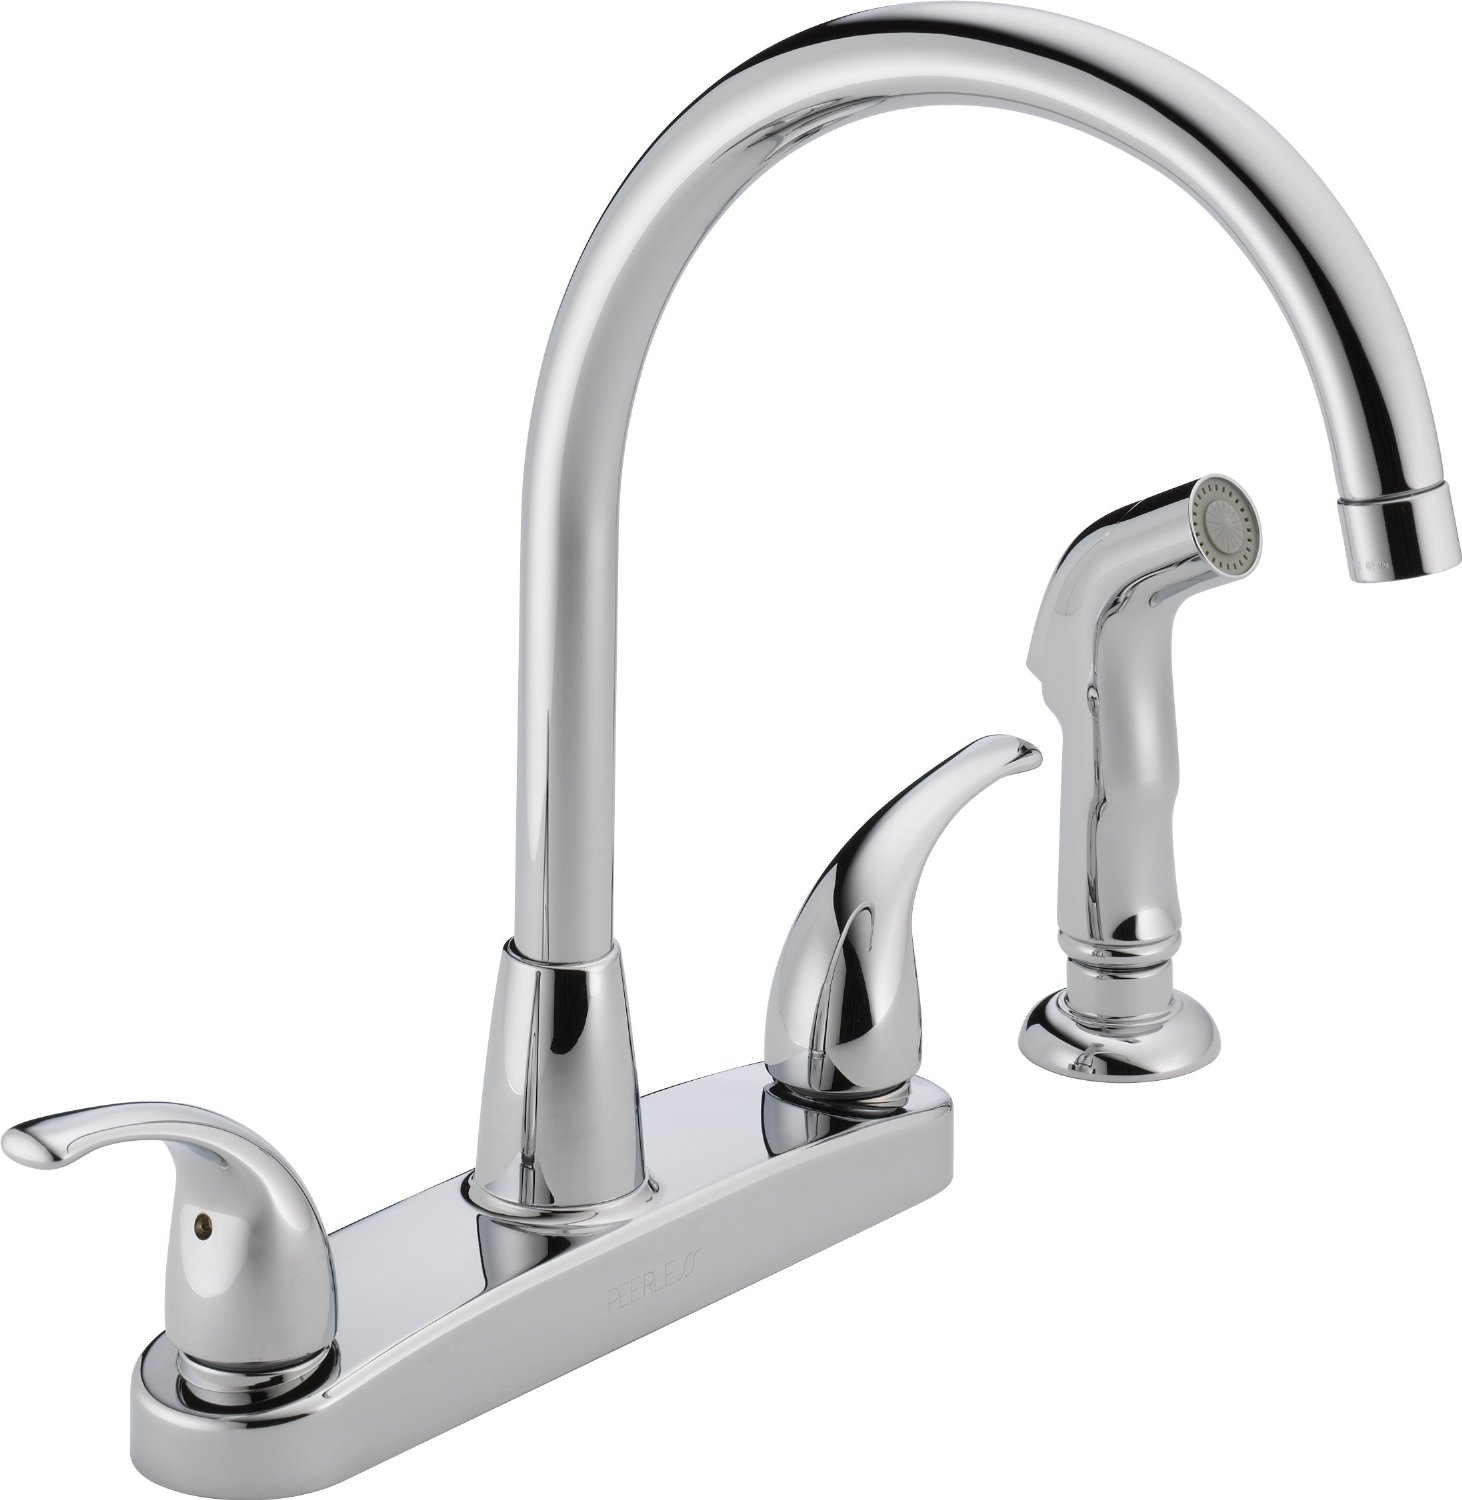 What Is The Best Brand Of Kitchen Faucets